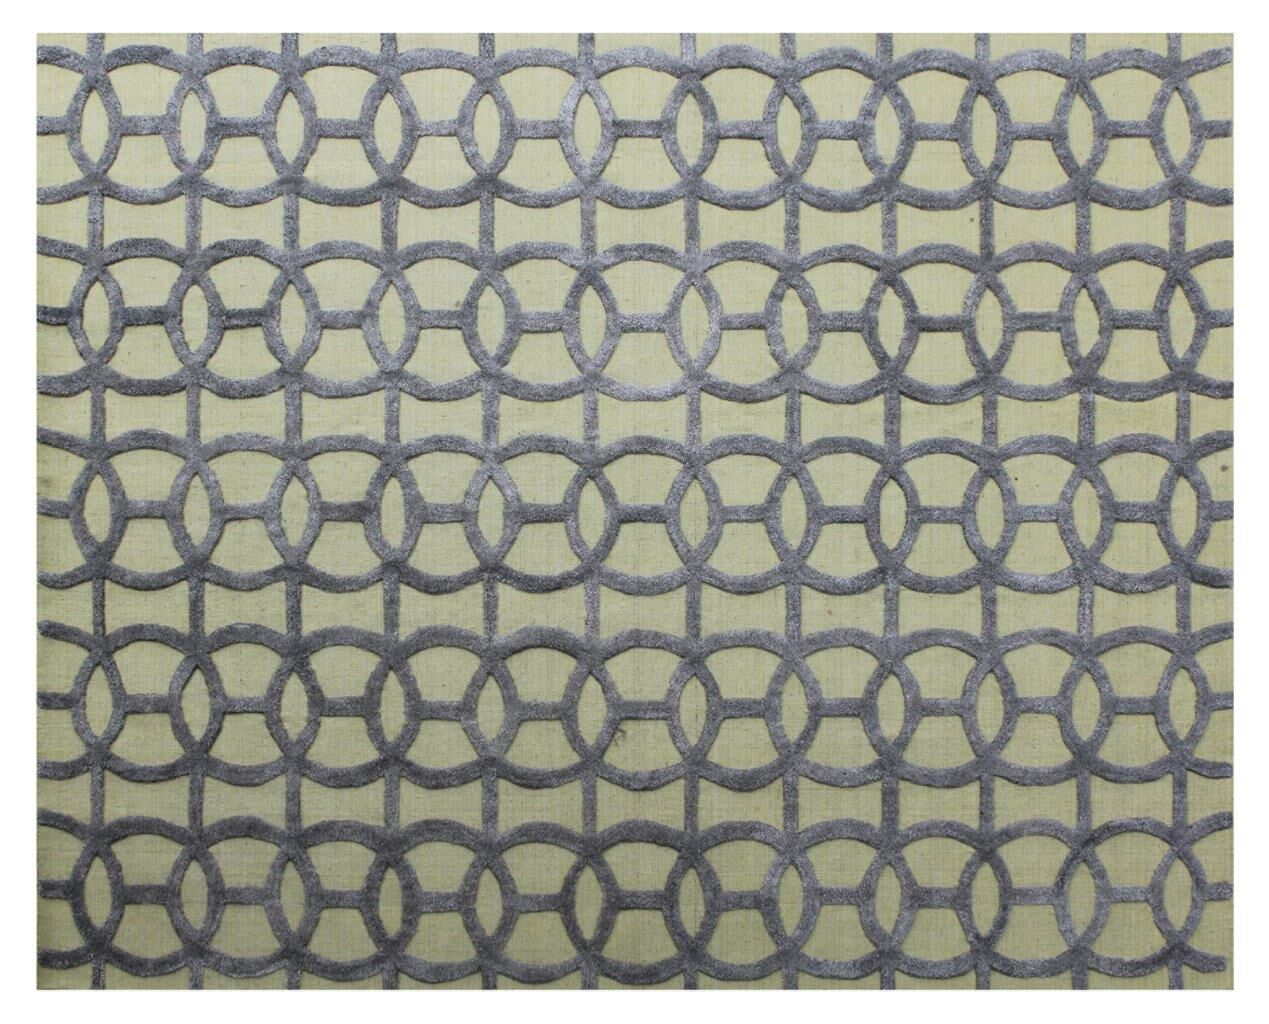 Windsor Hand-Woven Wool Blue/Beige Area Rug Rug Size: Rectangle 9' x 12'